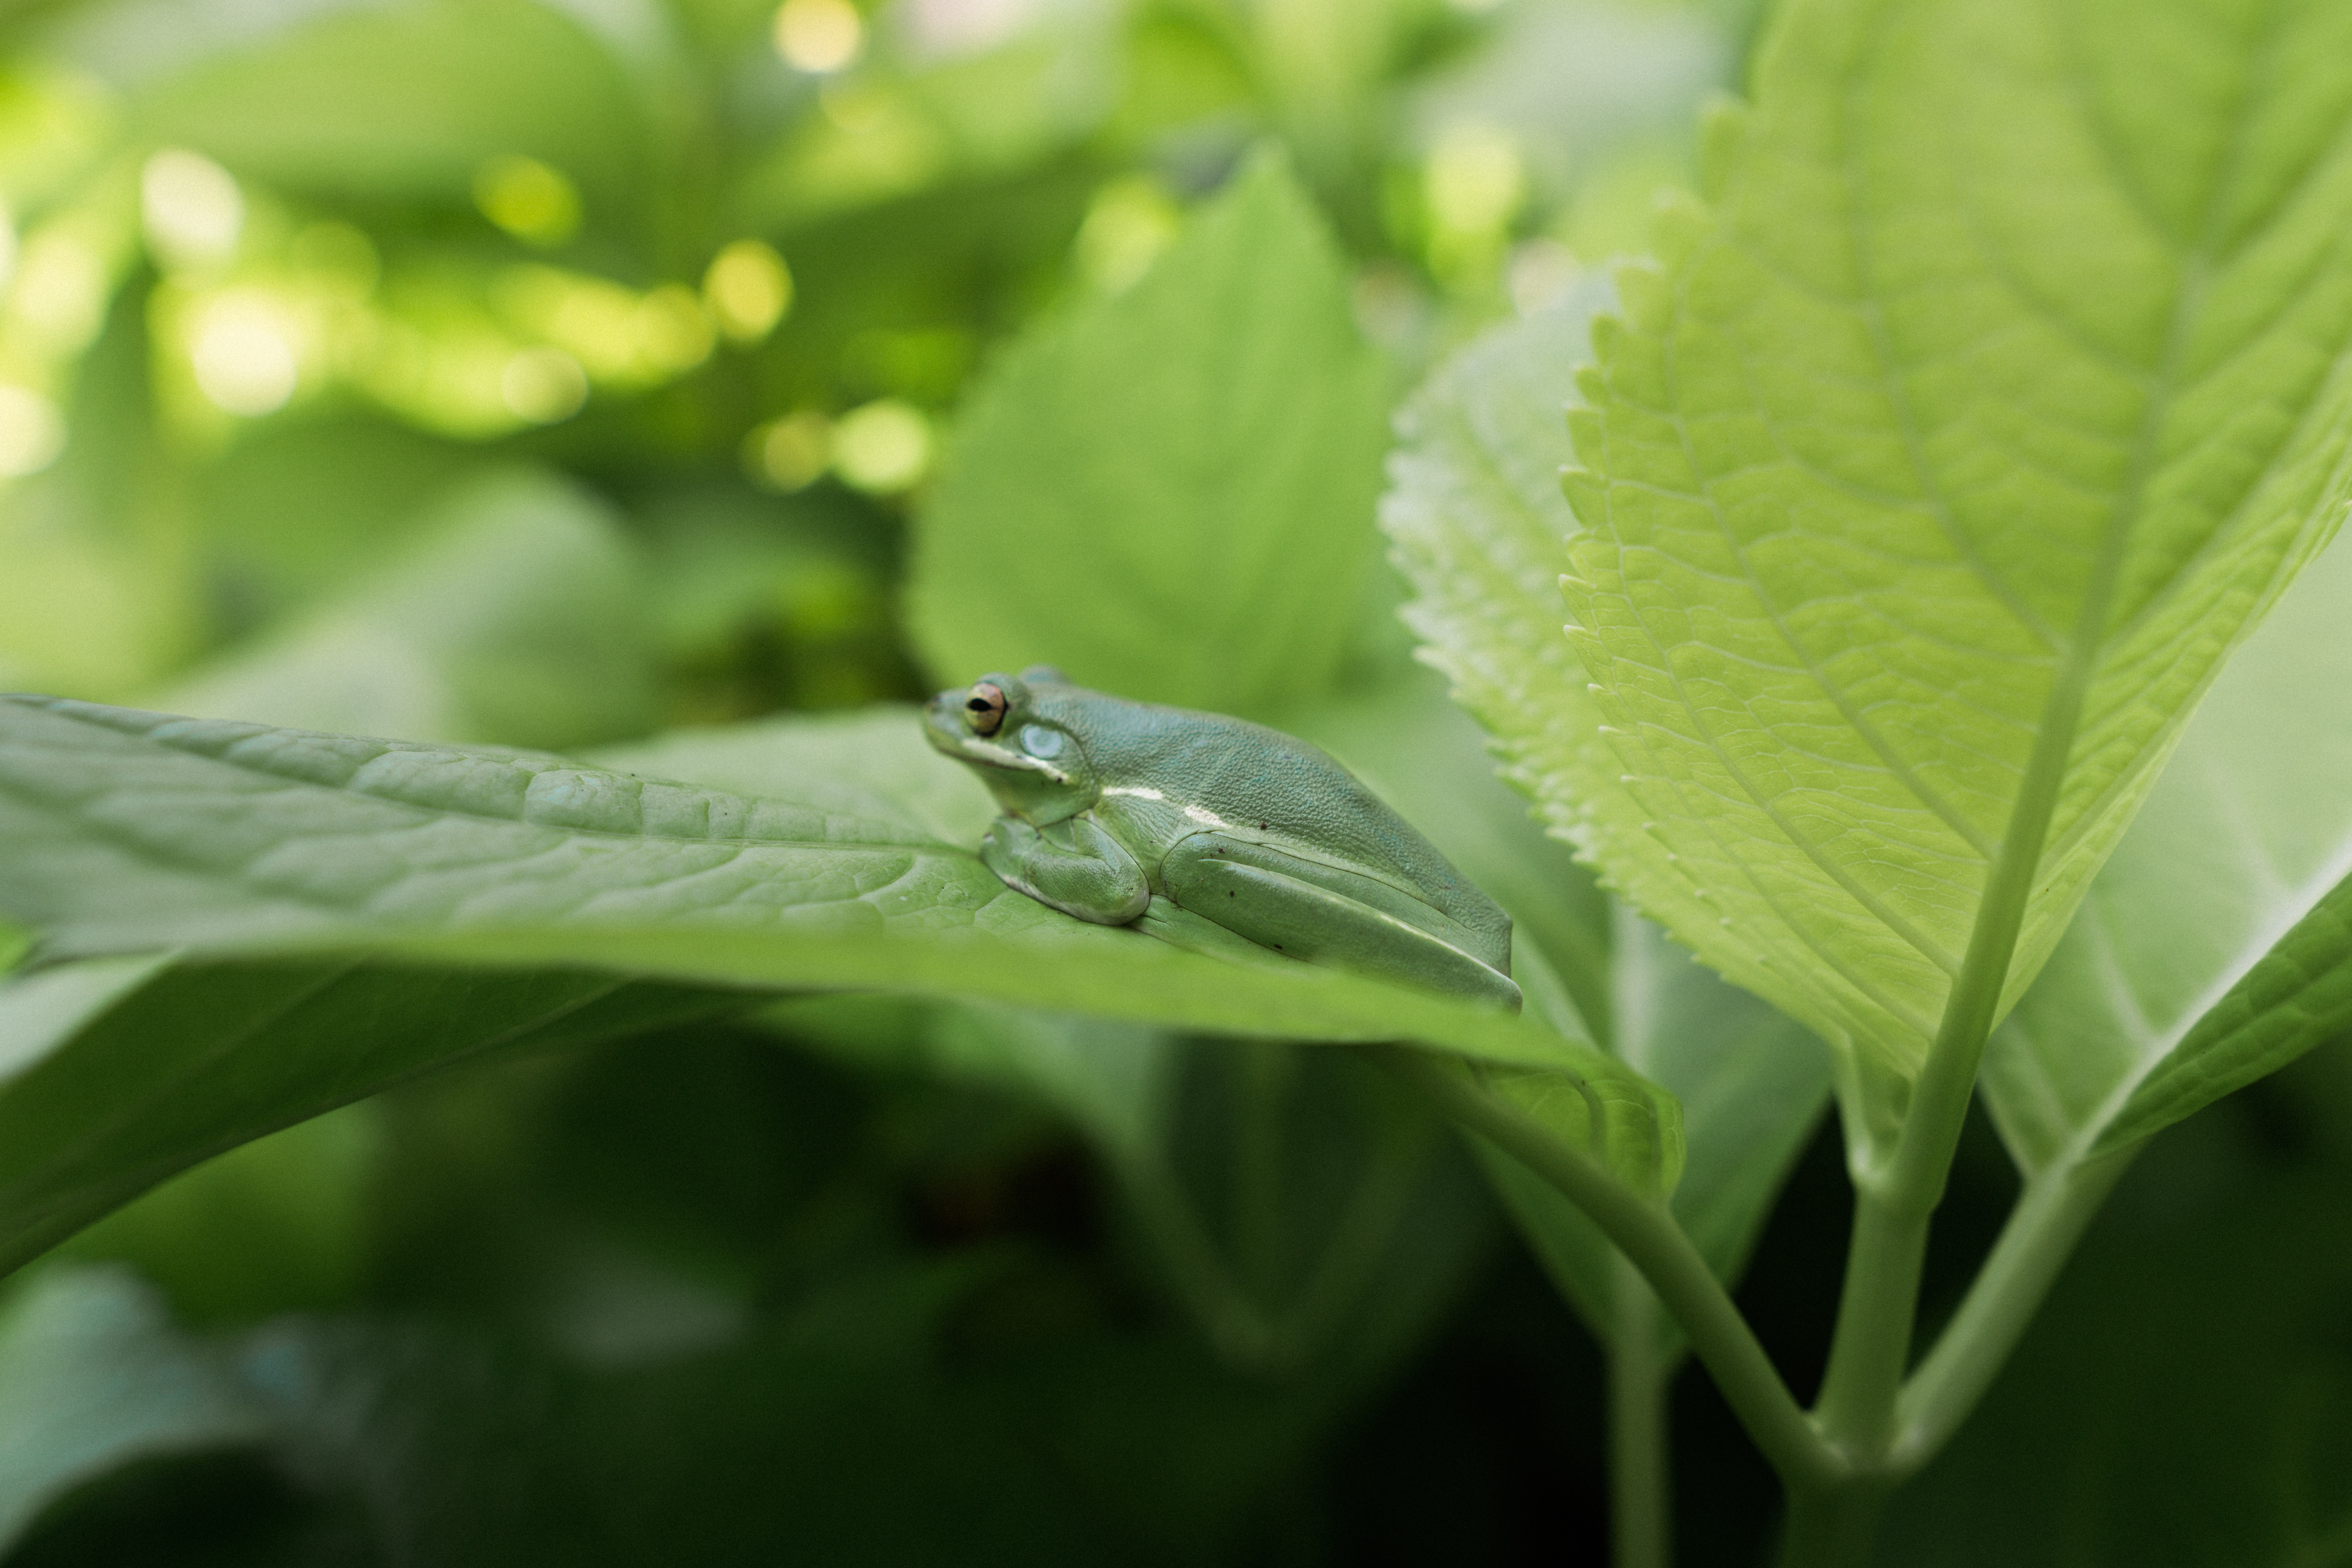 I had to get about an inch away from this frog to snap this with my 16mm